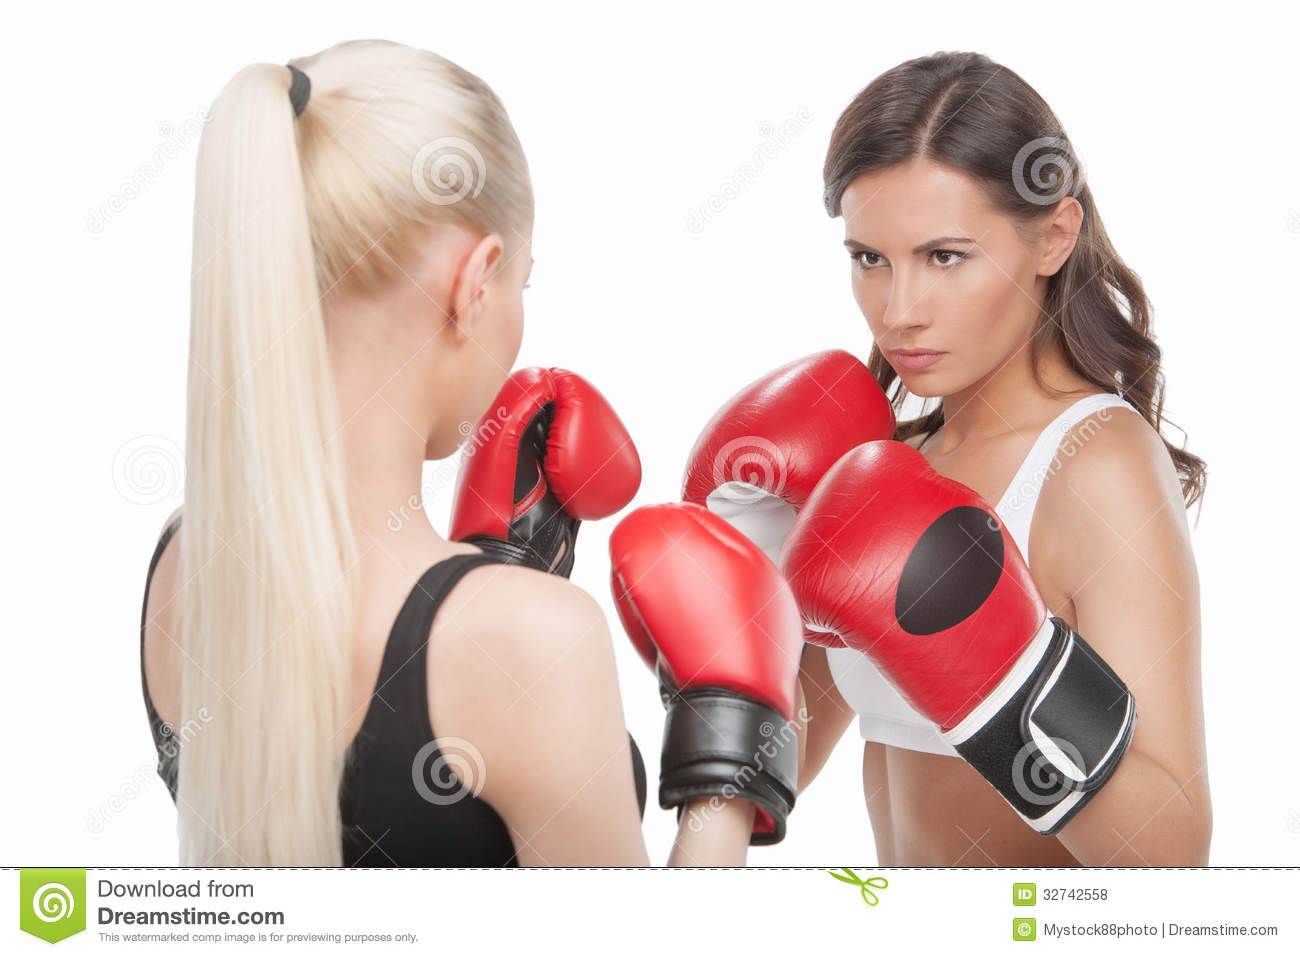 how to stop feeling competitive with other women